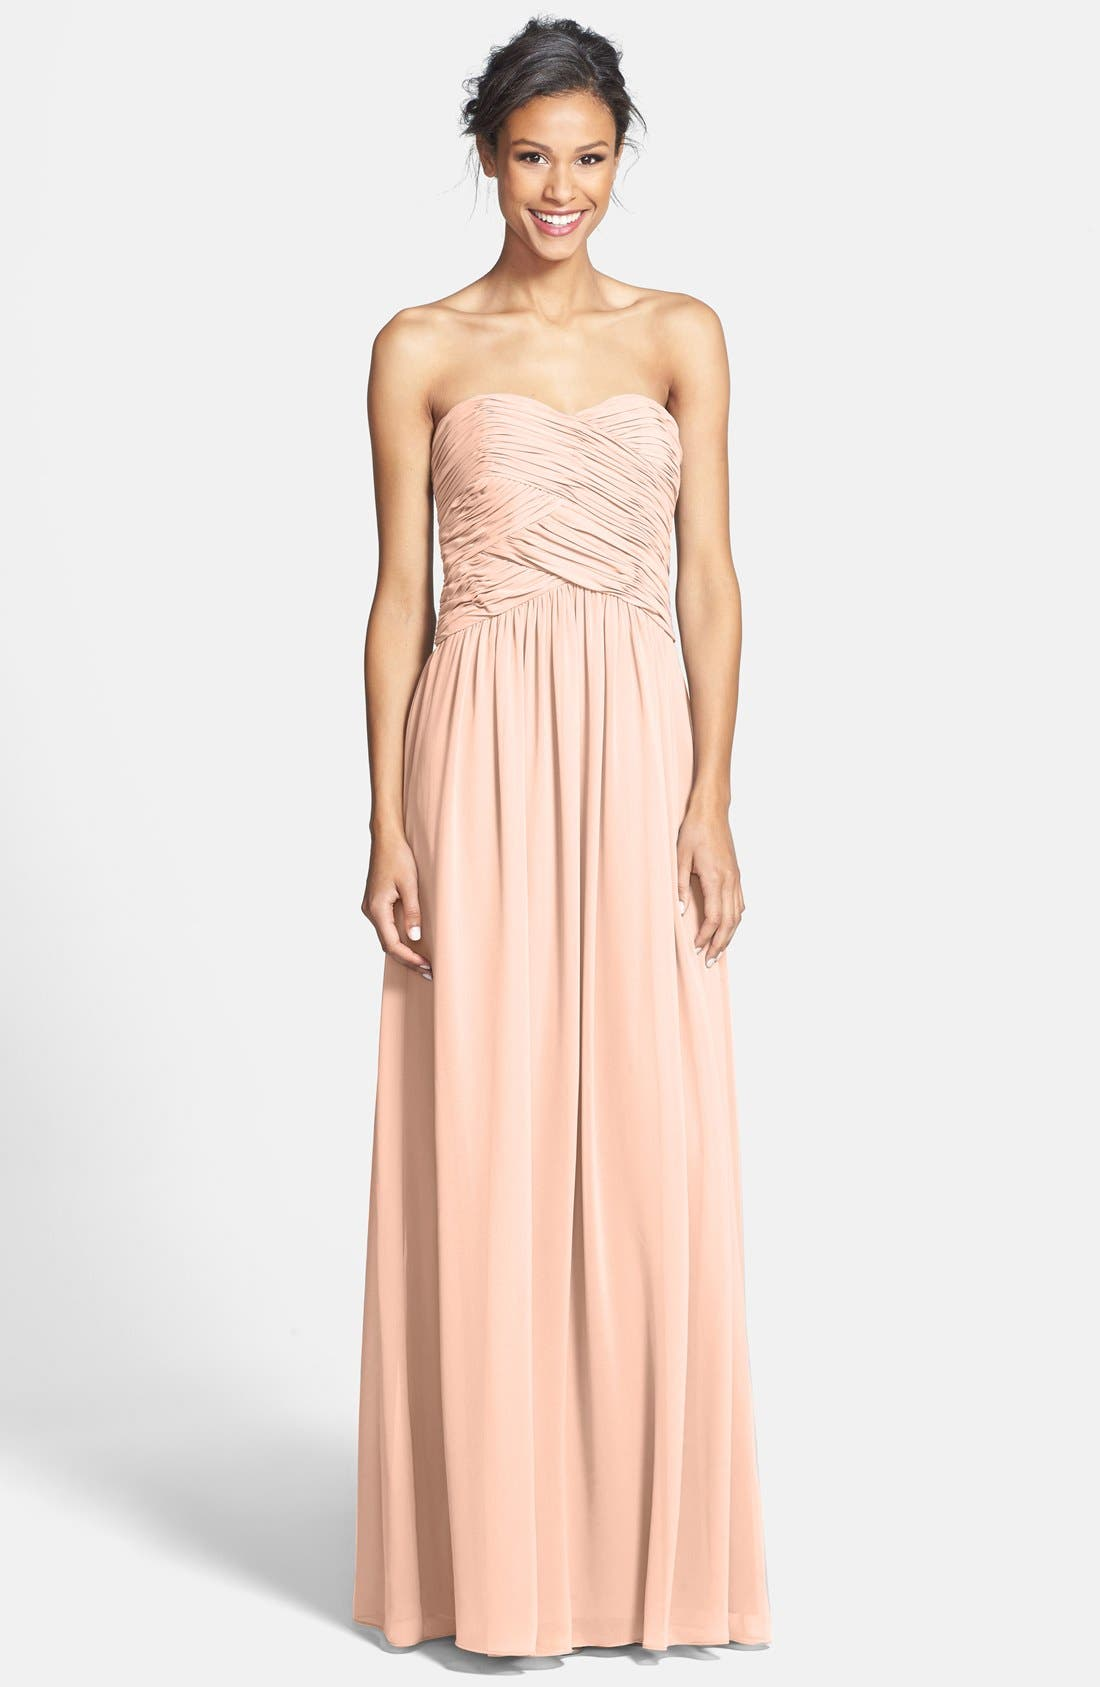 Main Image - Donna Morgan 'Audrey' Strapless Chiffon Gown